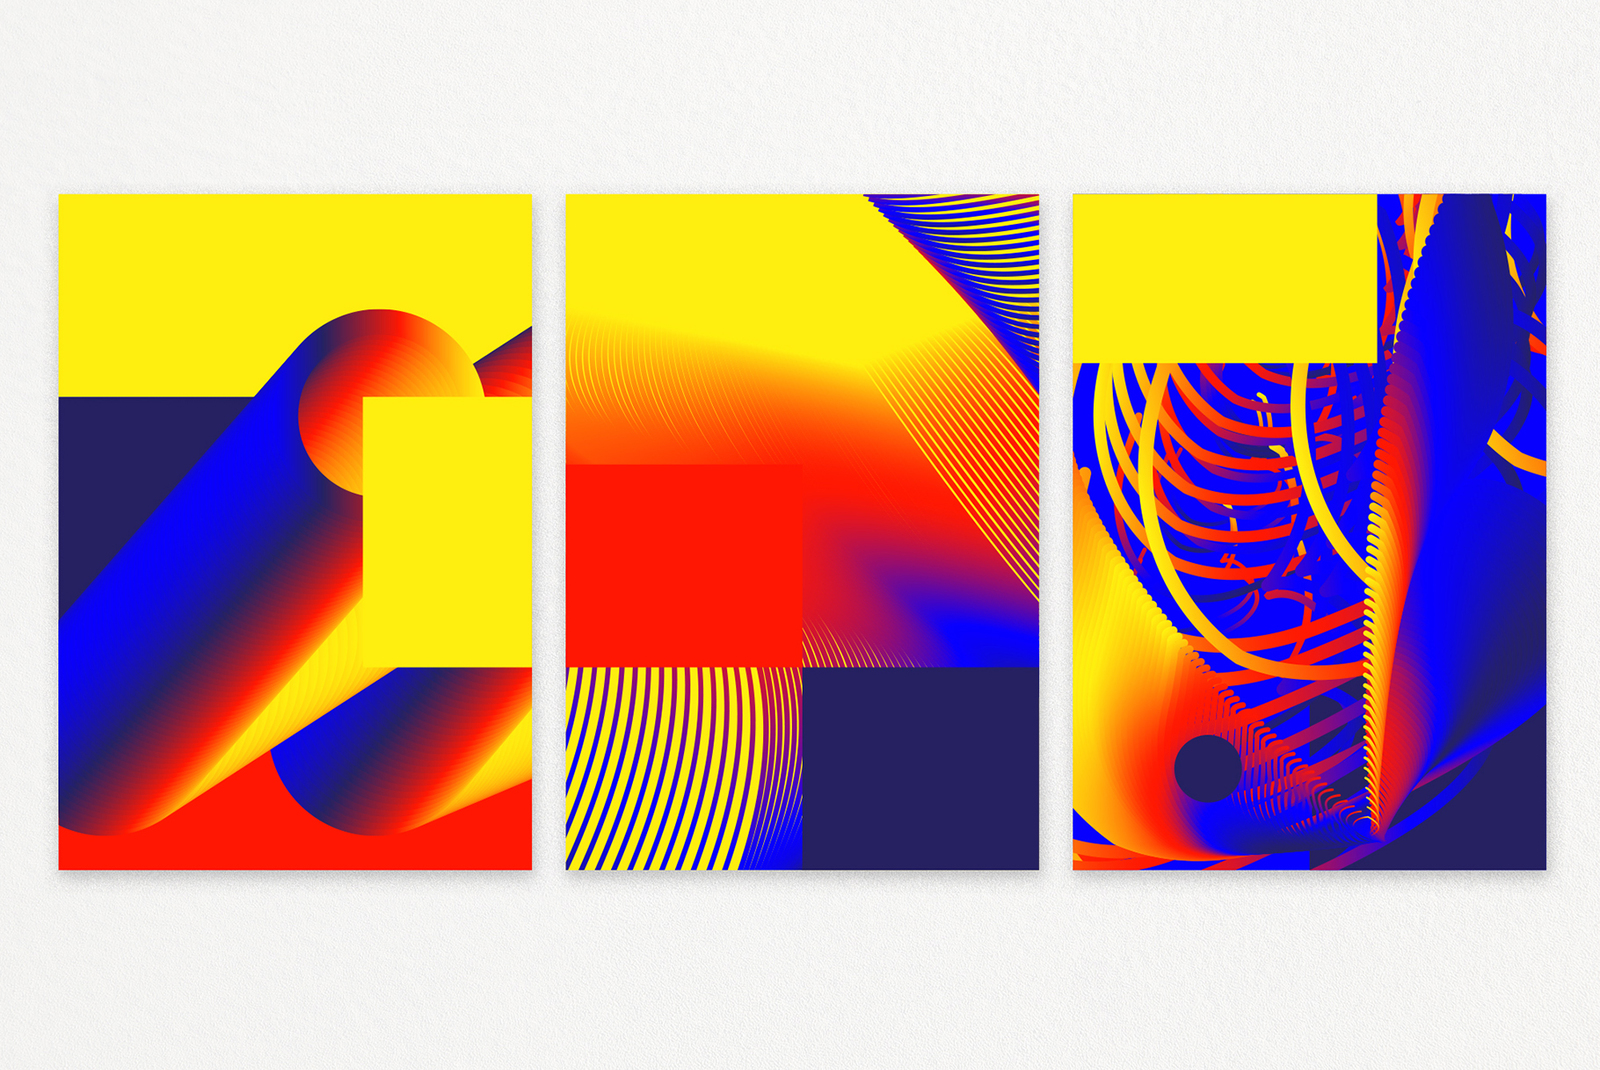 Cosmic Geometry: 87 shapes/posters